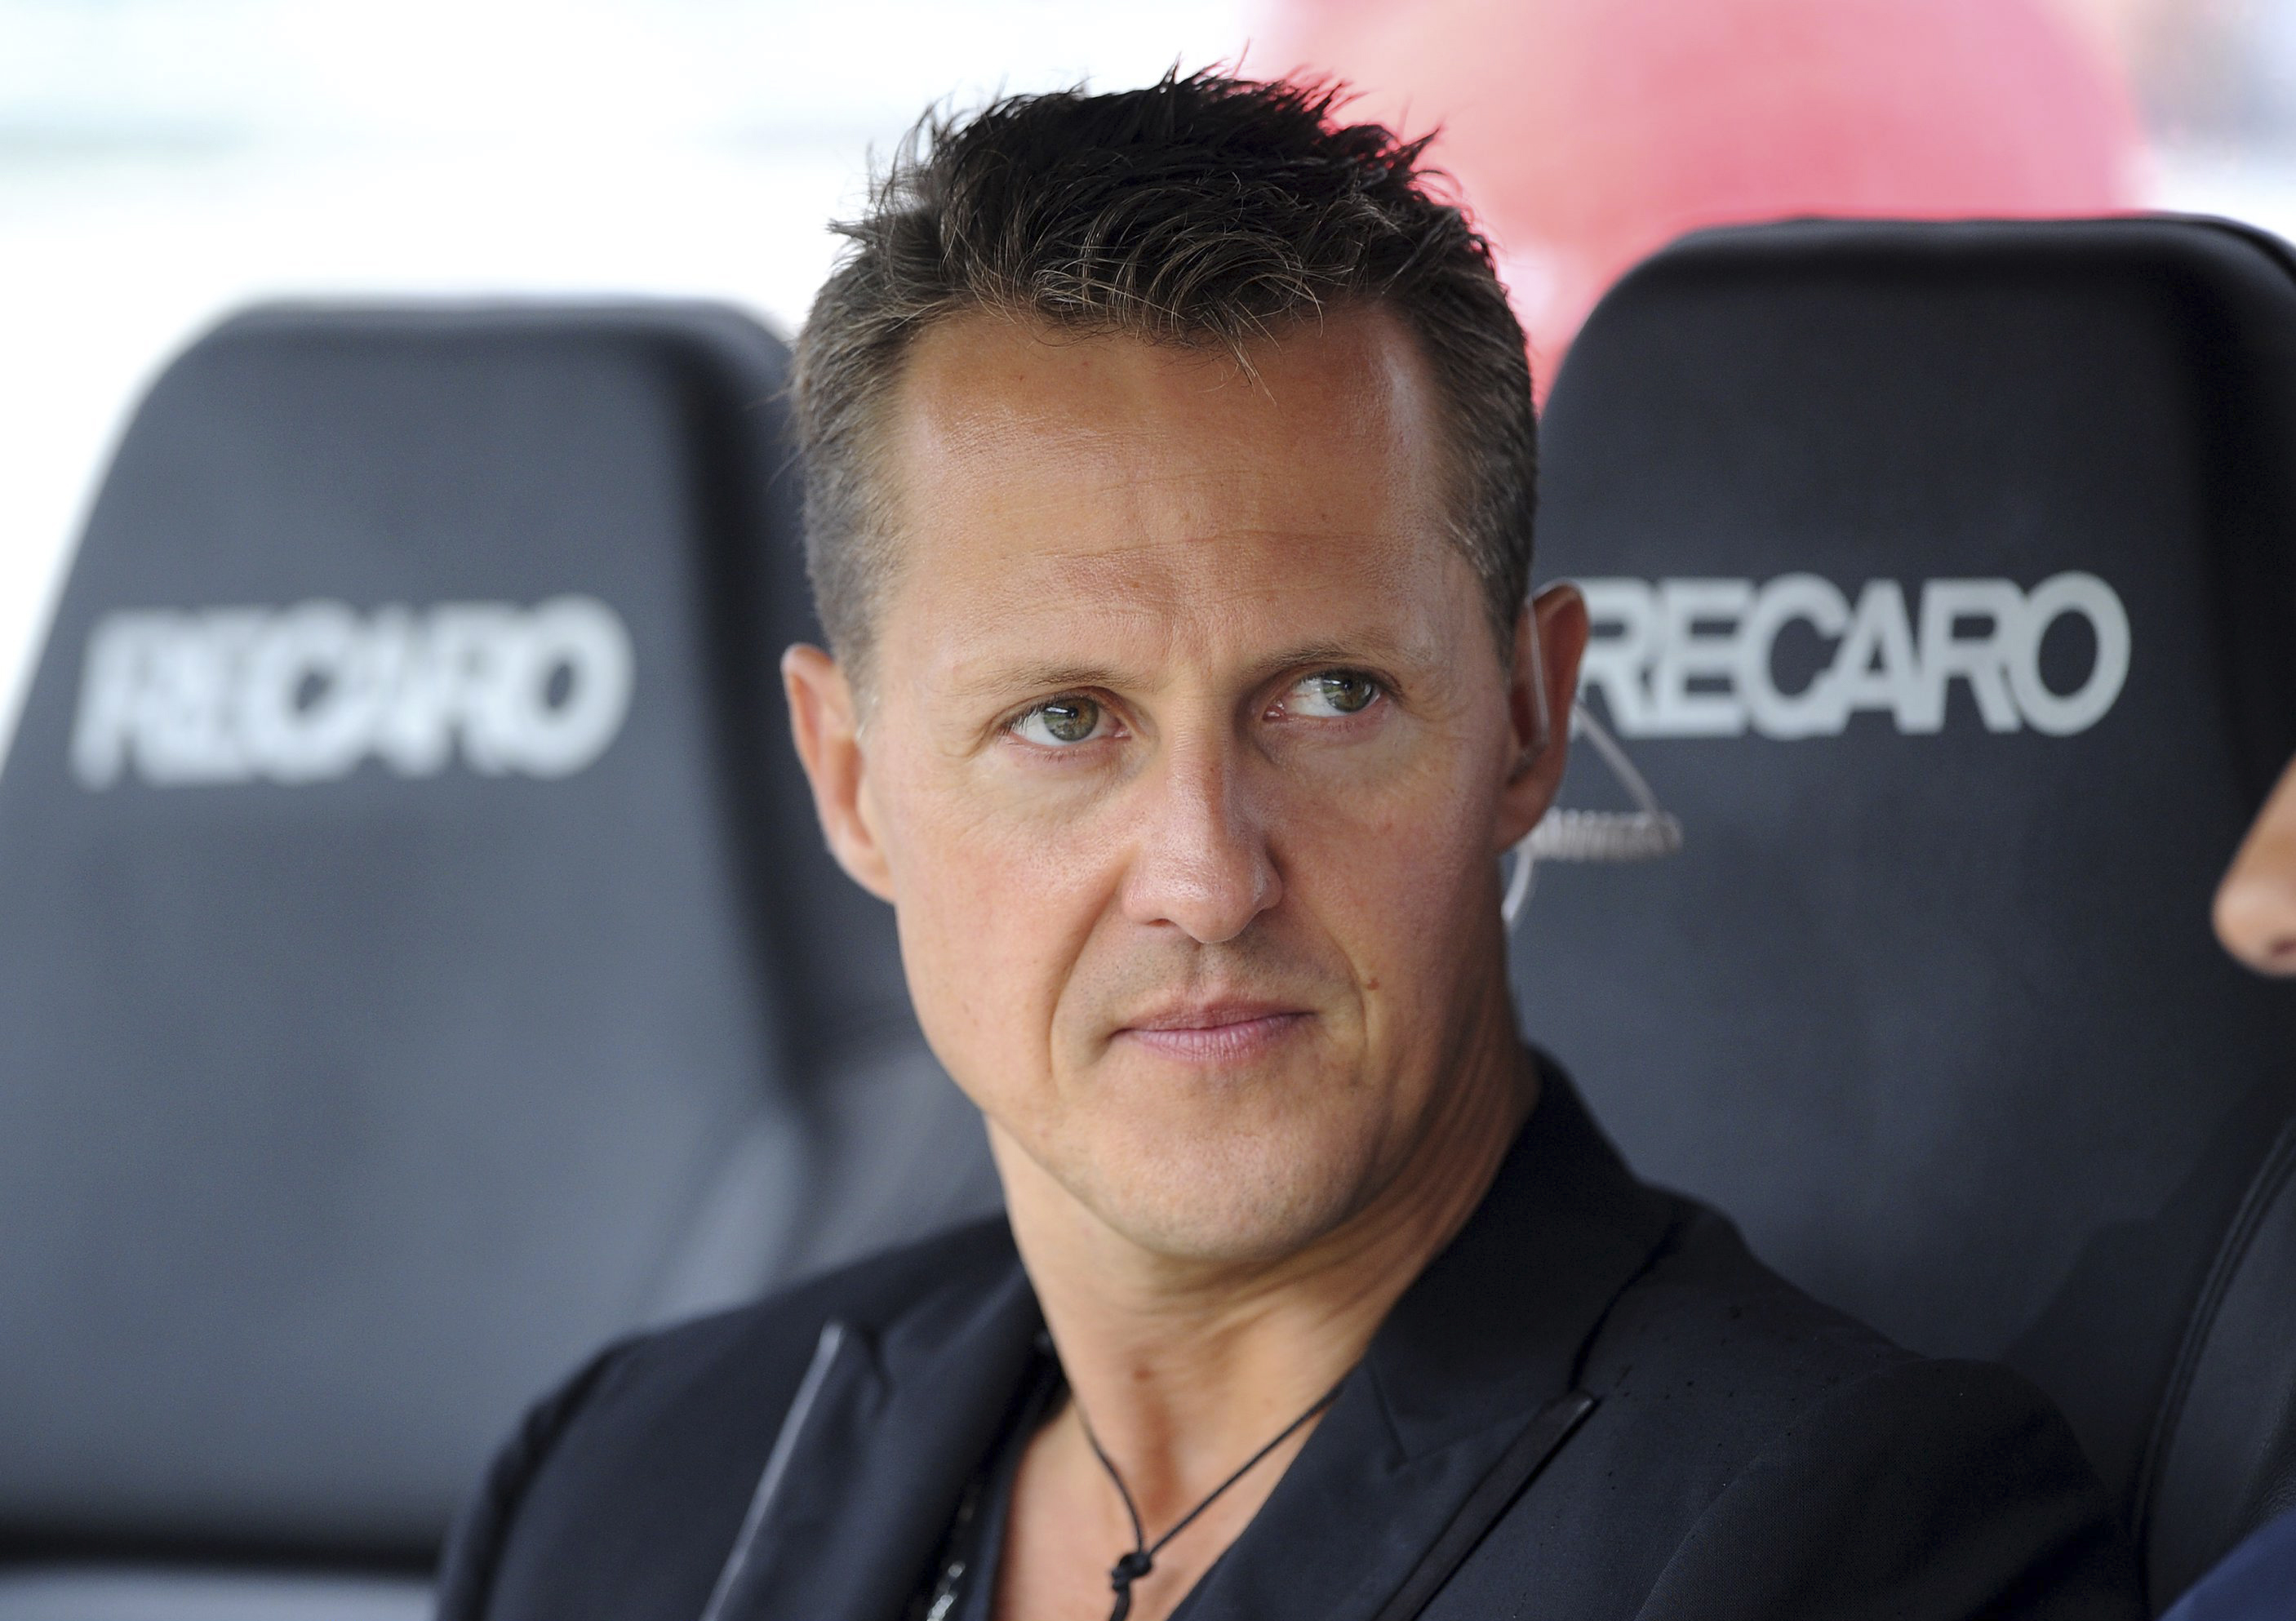 Michael Schumacher Richest formula 1 drivers